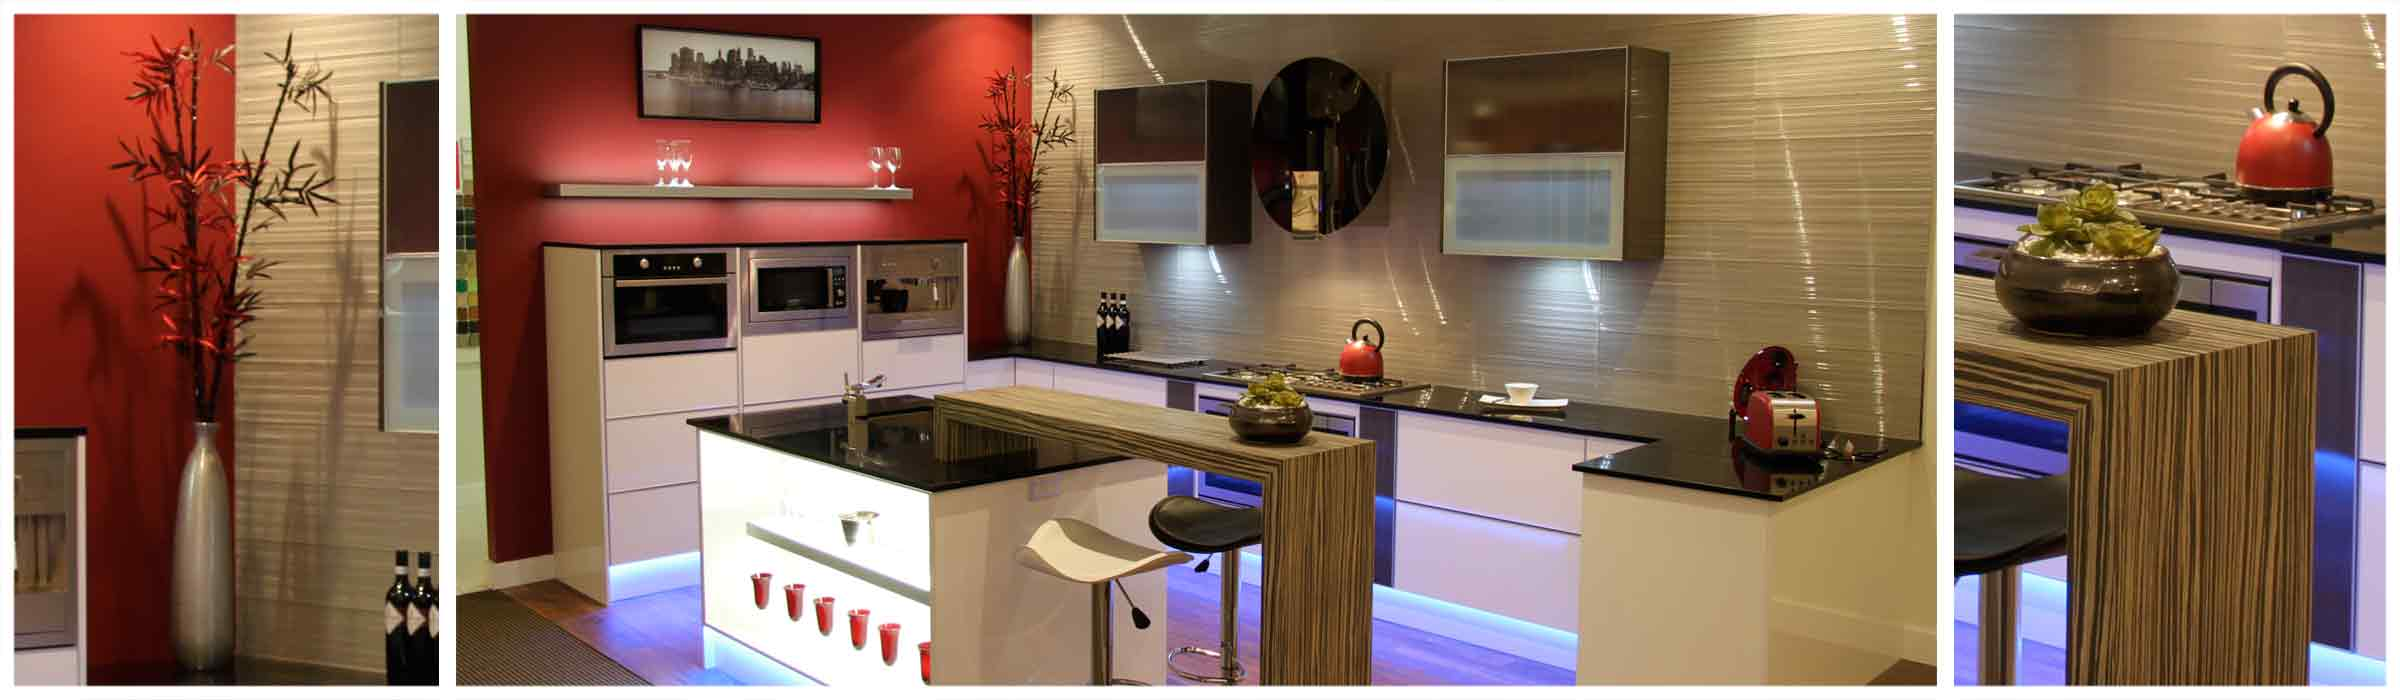 Pulse Kitchens and Interiors Cabinetry